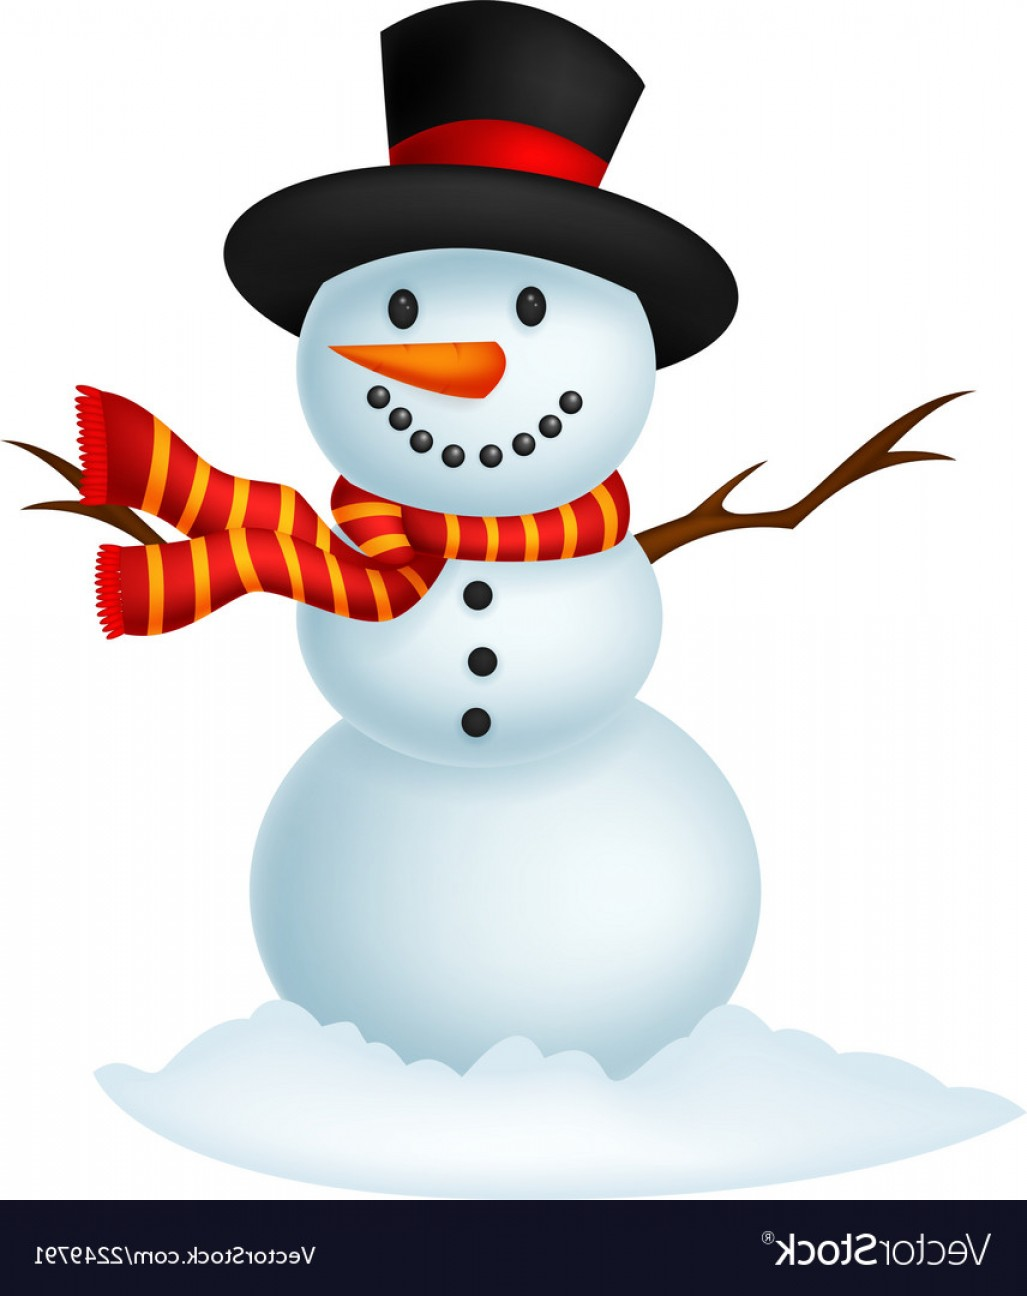 No Hat With Snowman Vector: Christmas Snowman Cartoon Wearing A Hat And Red Sc Vector